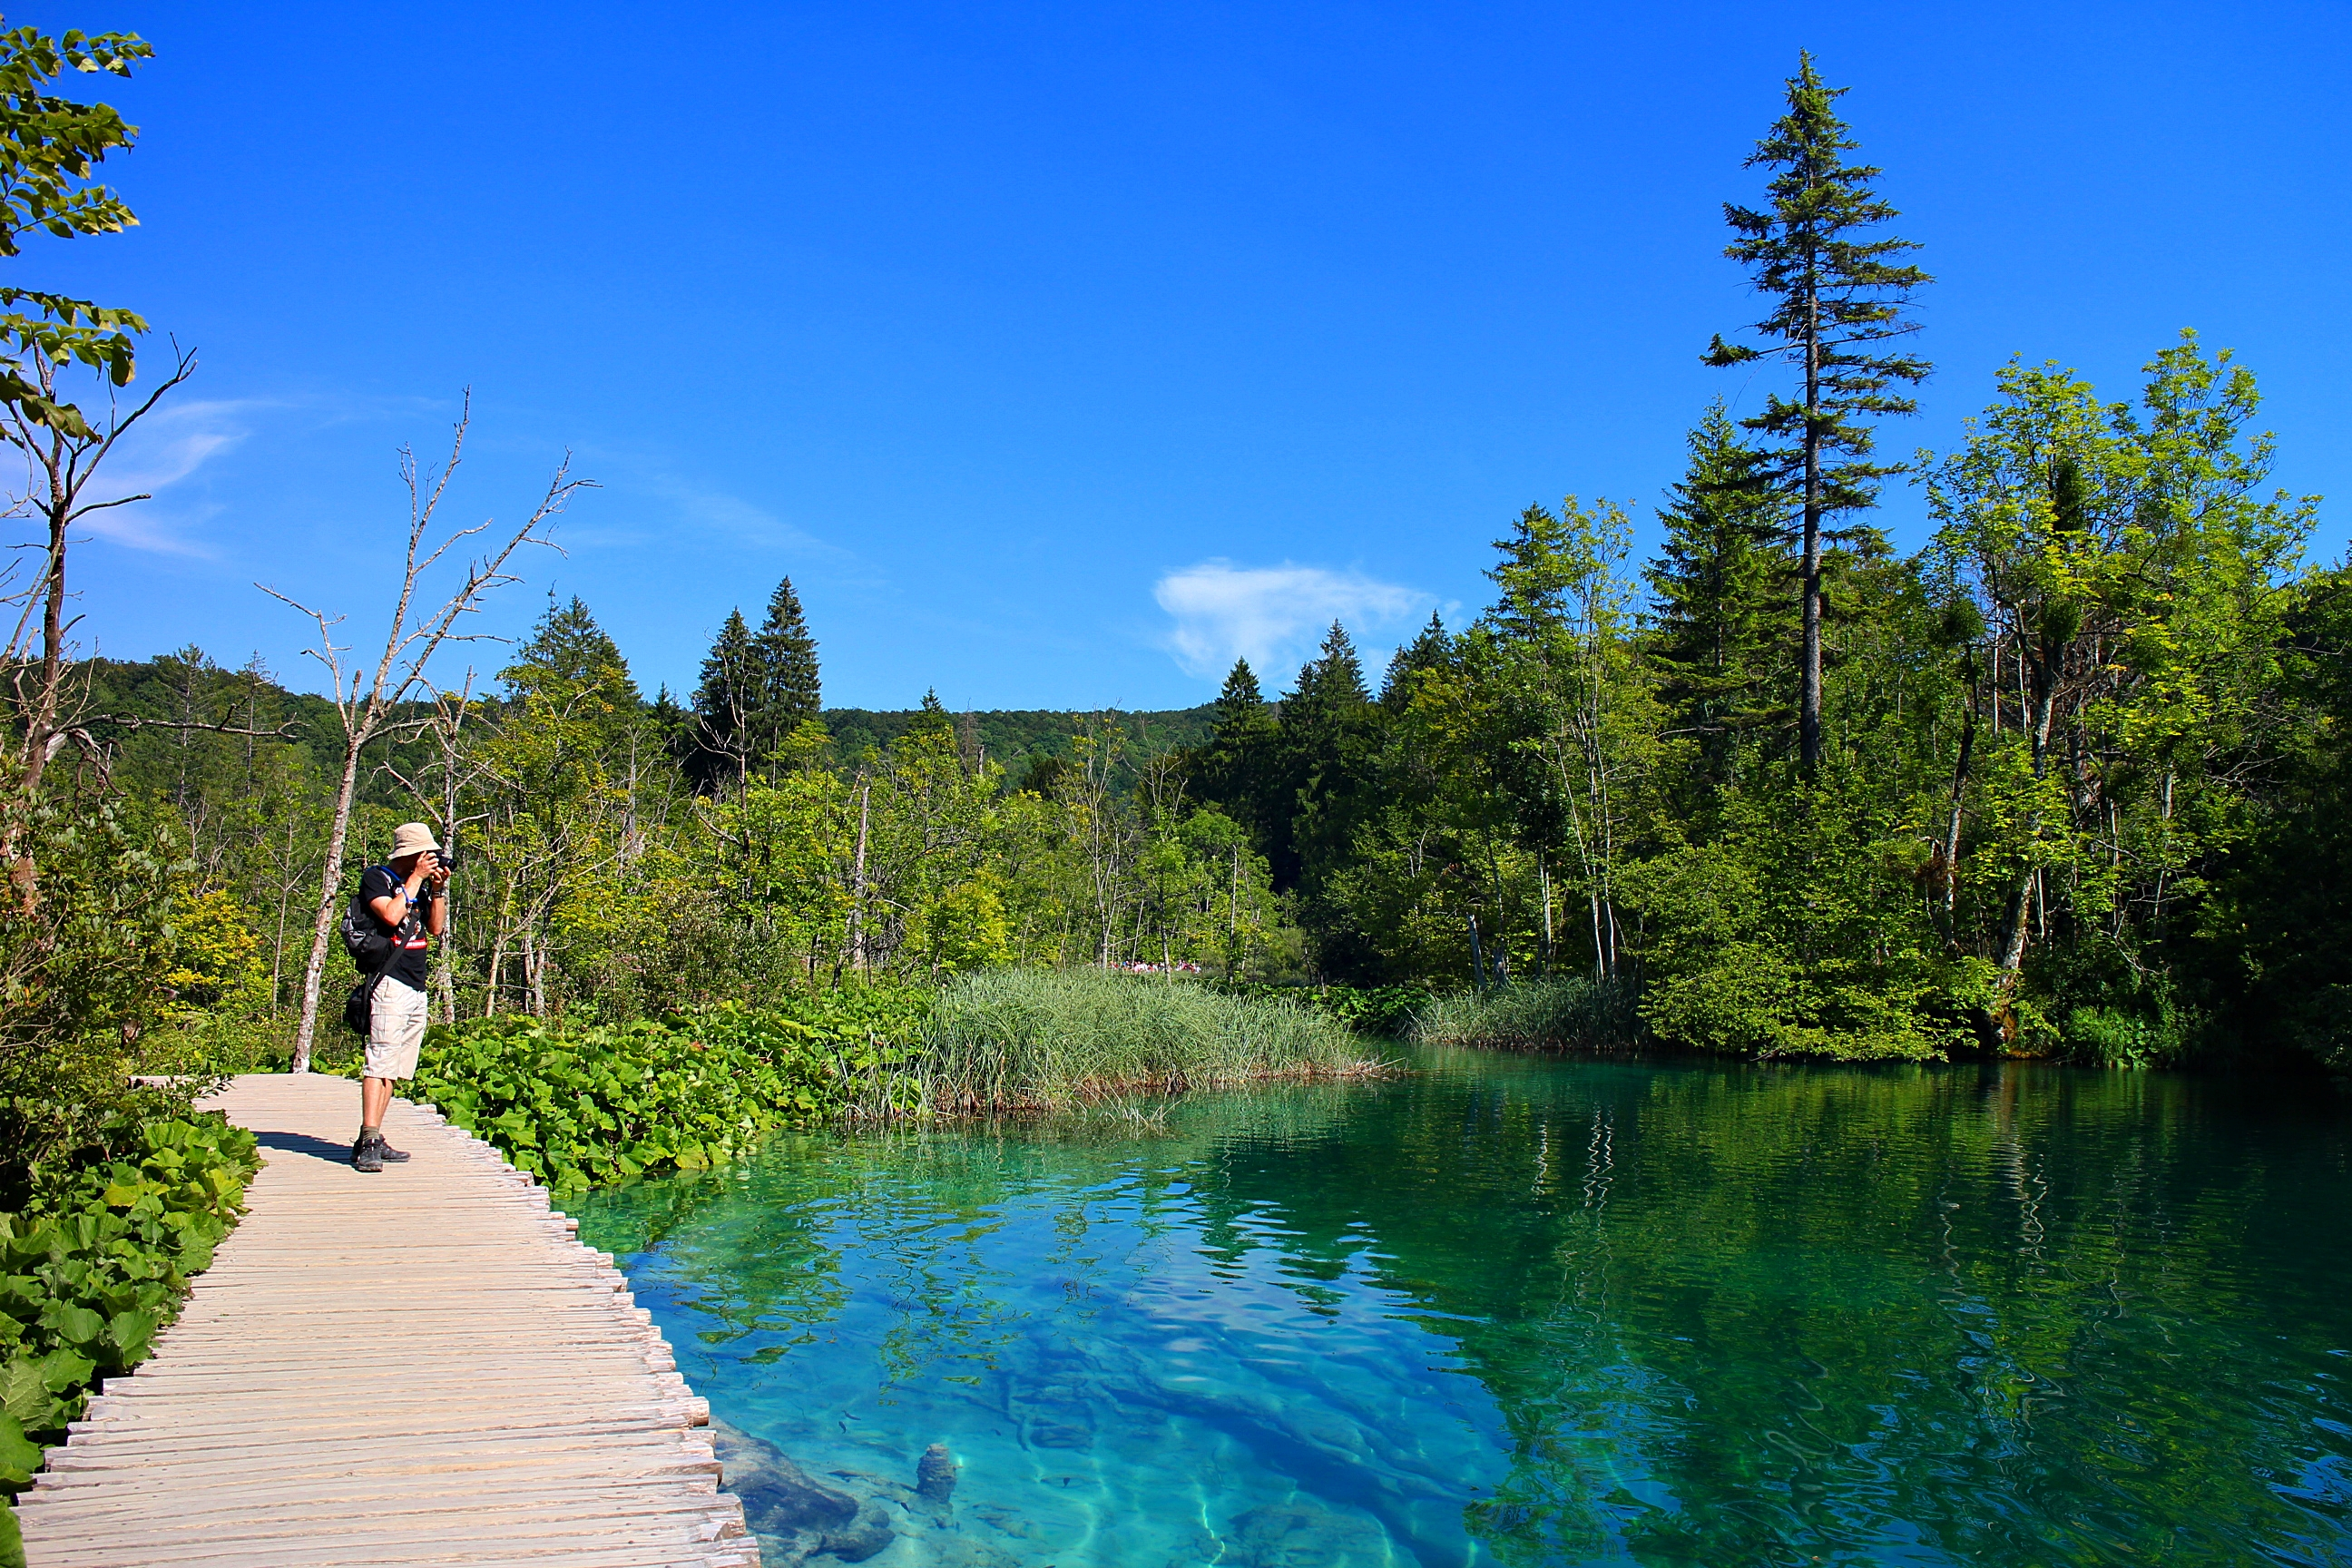 12_Plitvice Lakes National Park, Croatia